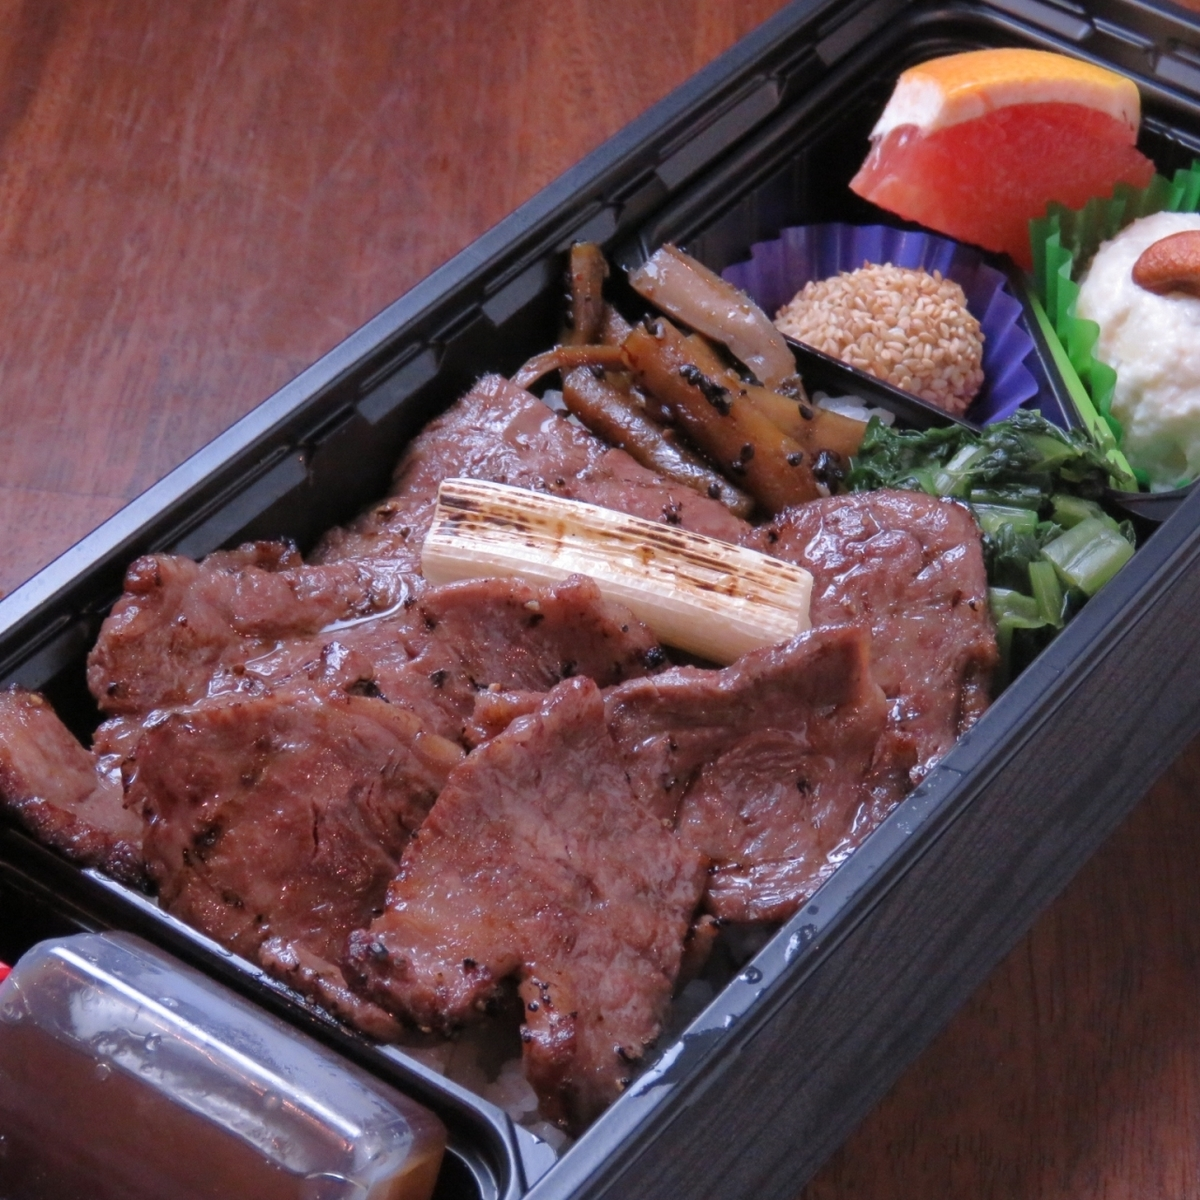 Kuroge Wagyu Beef Charcoal Broiled Bento / Special Cow Tongue Charcoal Broiled Bento Bento